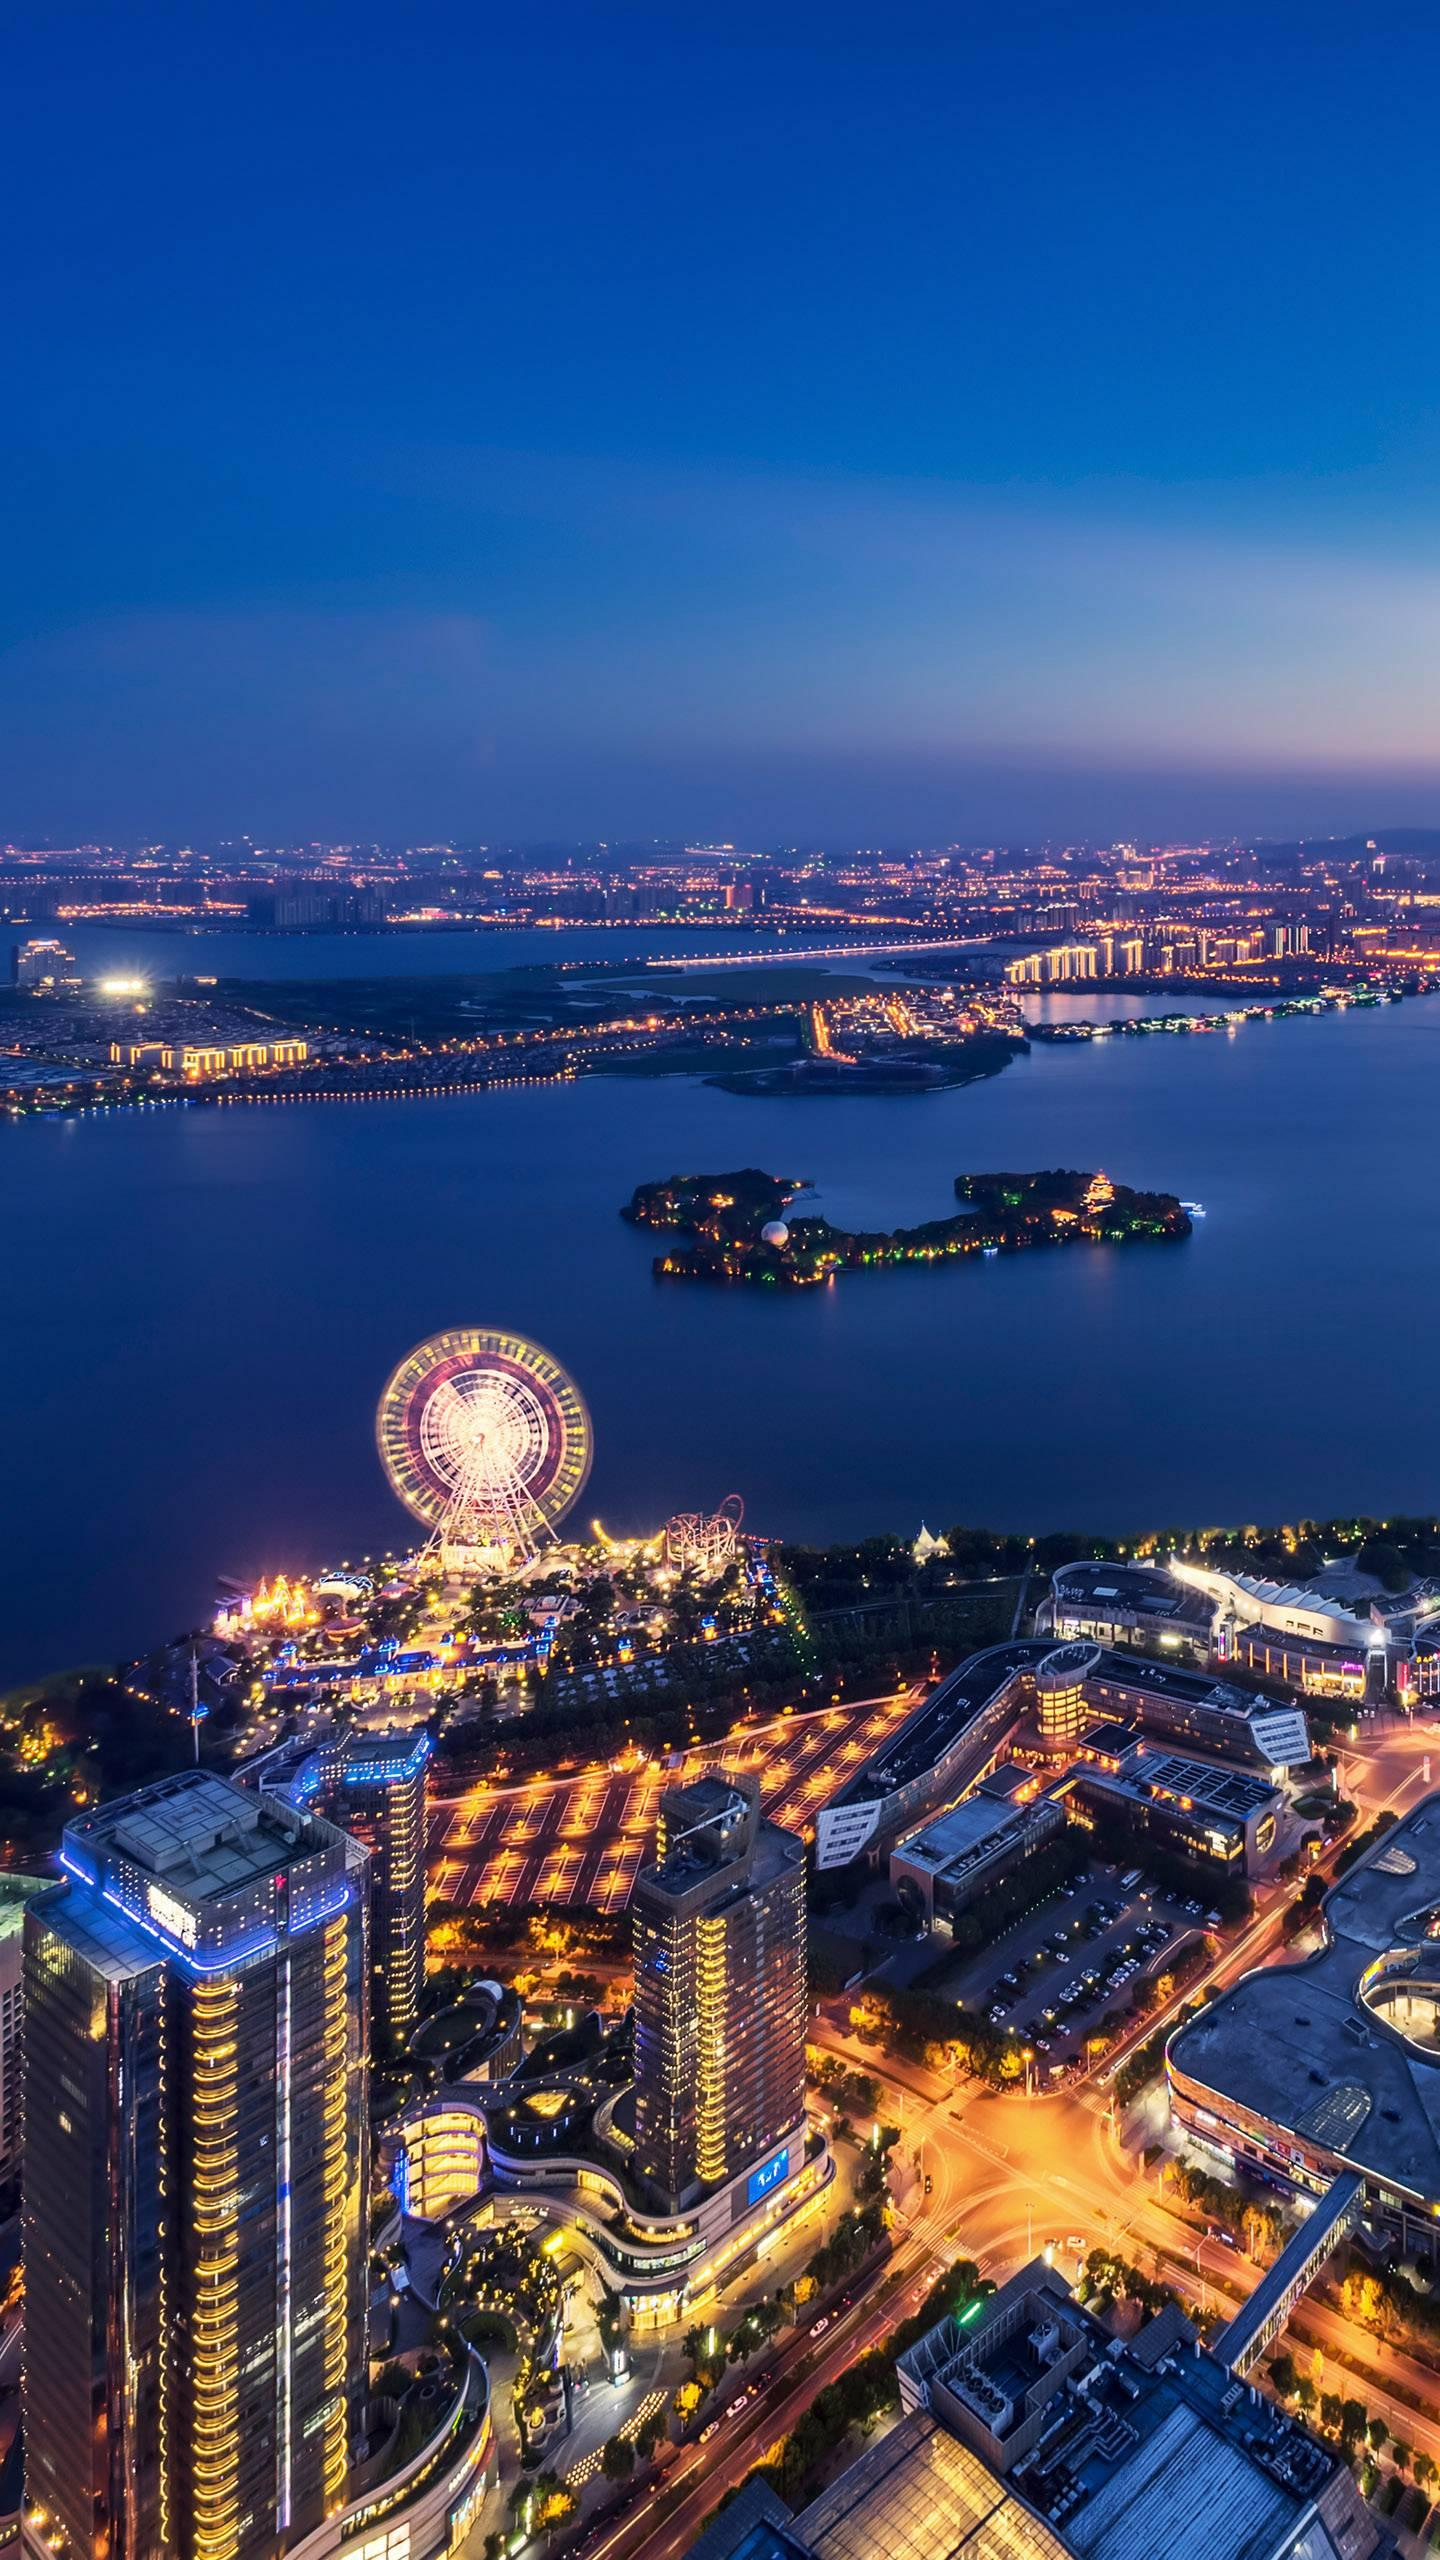 Suzhou - Golden Rooster. Jinji Lake is a beautiful and bright place in the industrial park. It is shining and sparkling at night.